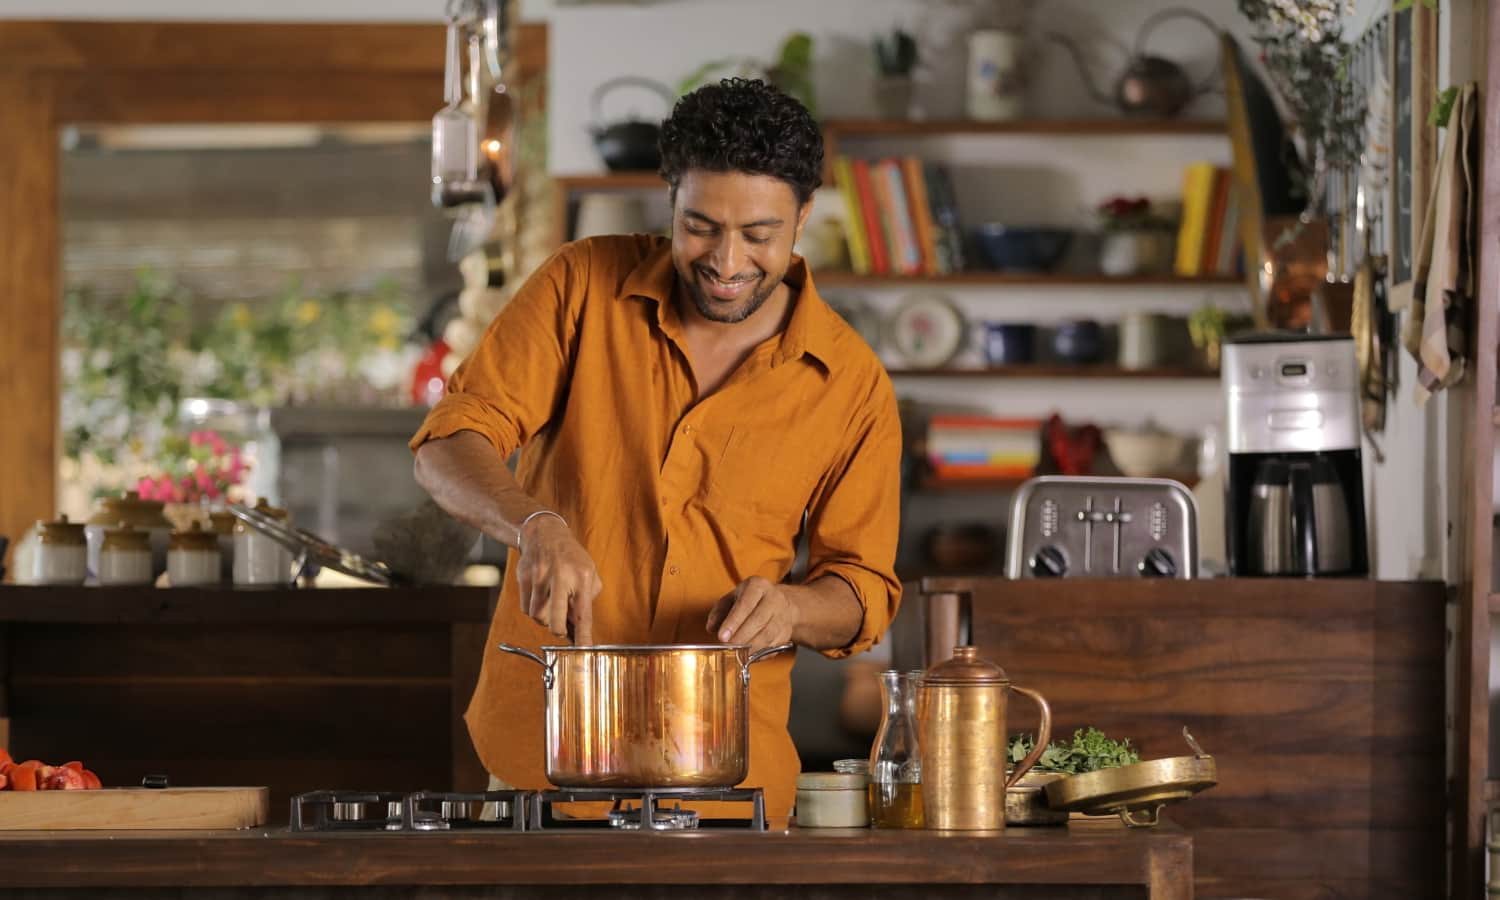 A popular Indian chef Ranveer Brar is trying to bring traditional grains and cooking methods back into many Indians' regular diets.